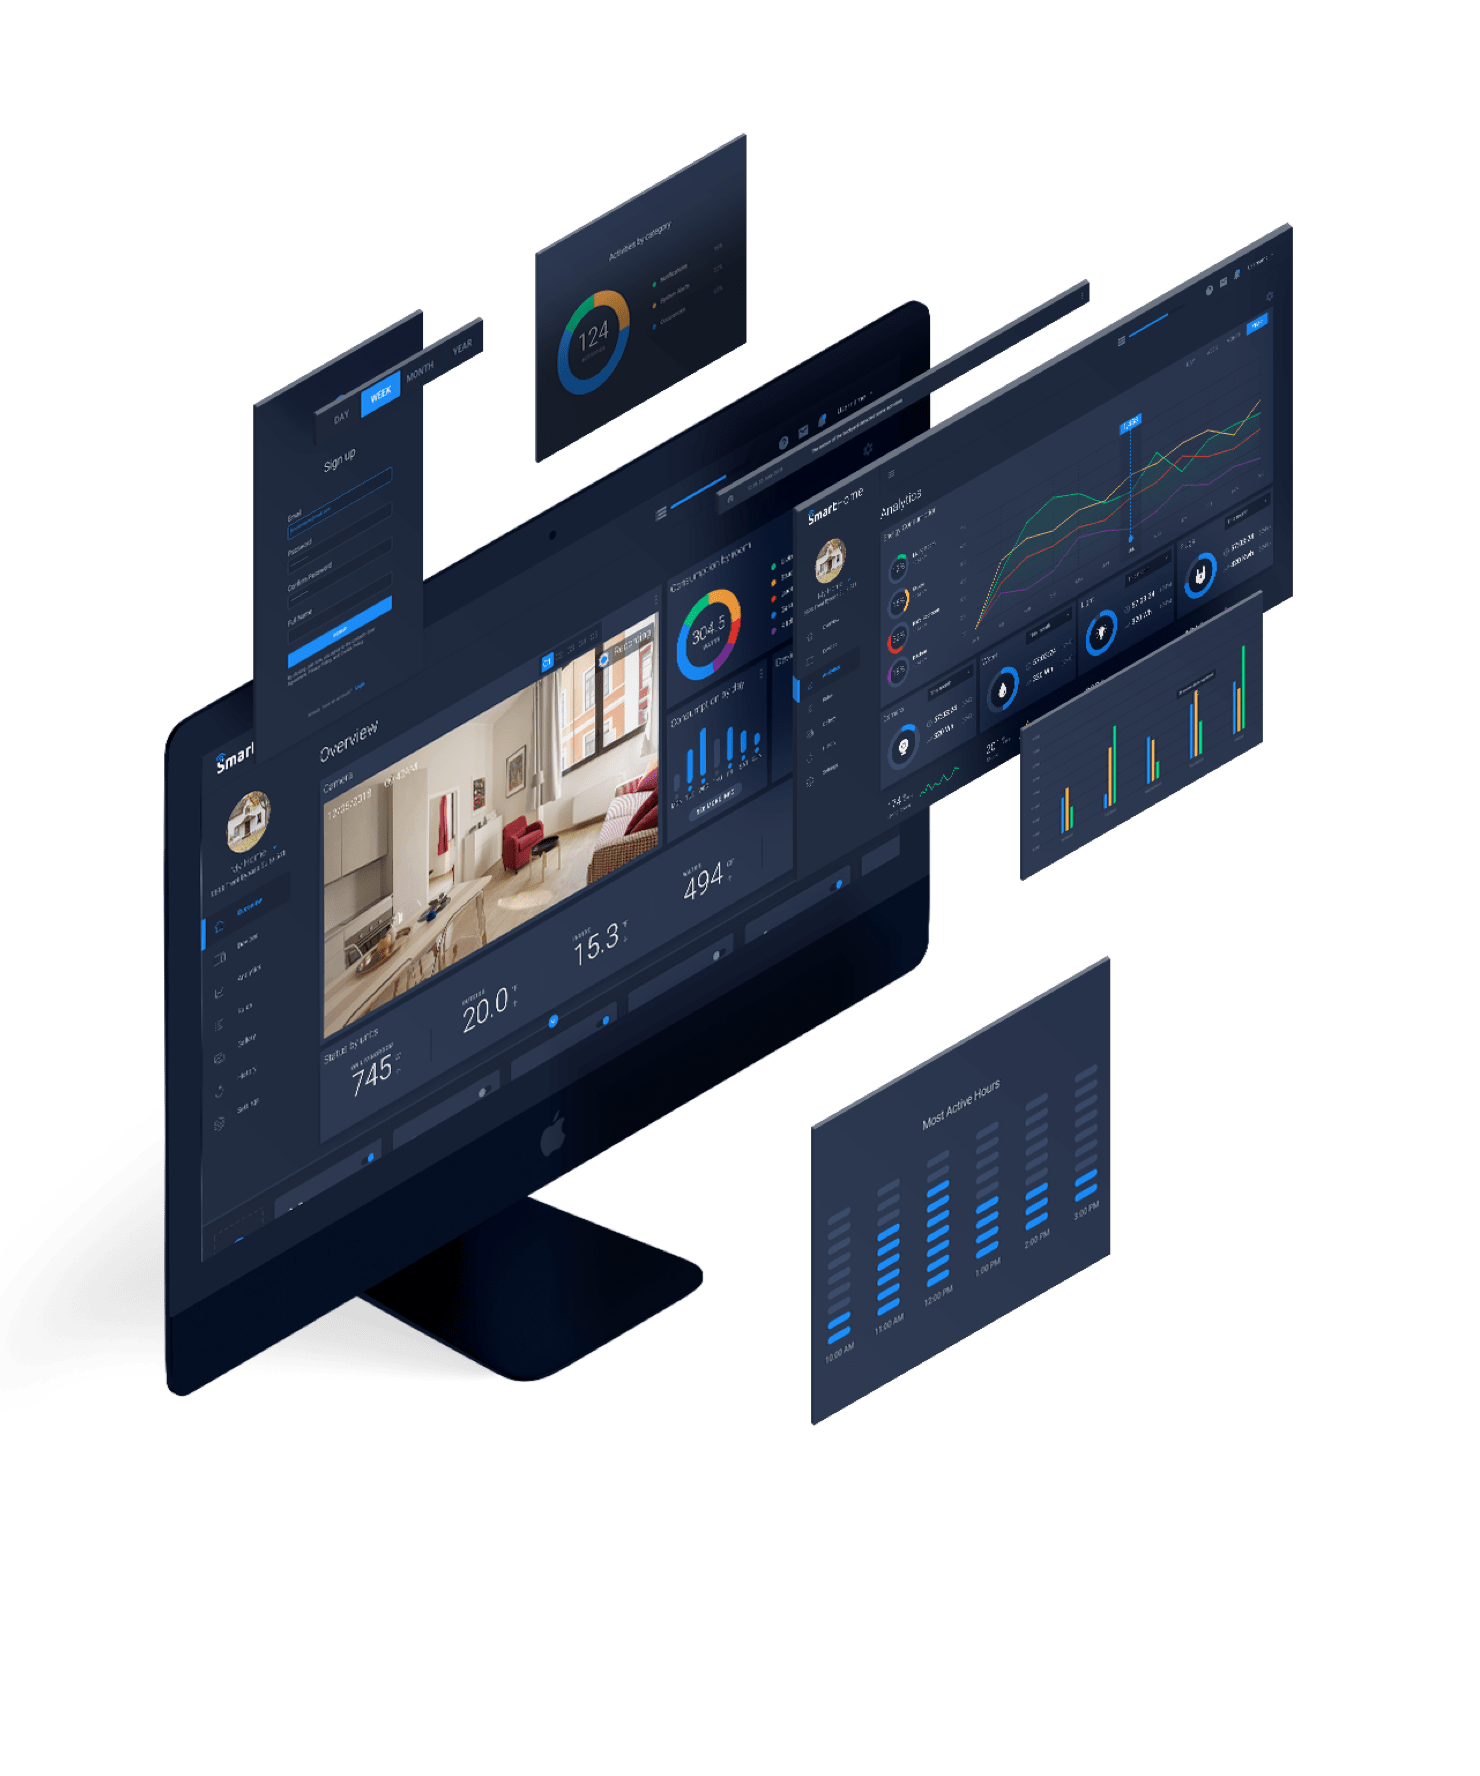 Smart home a digital ui kit for the physical world by invision